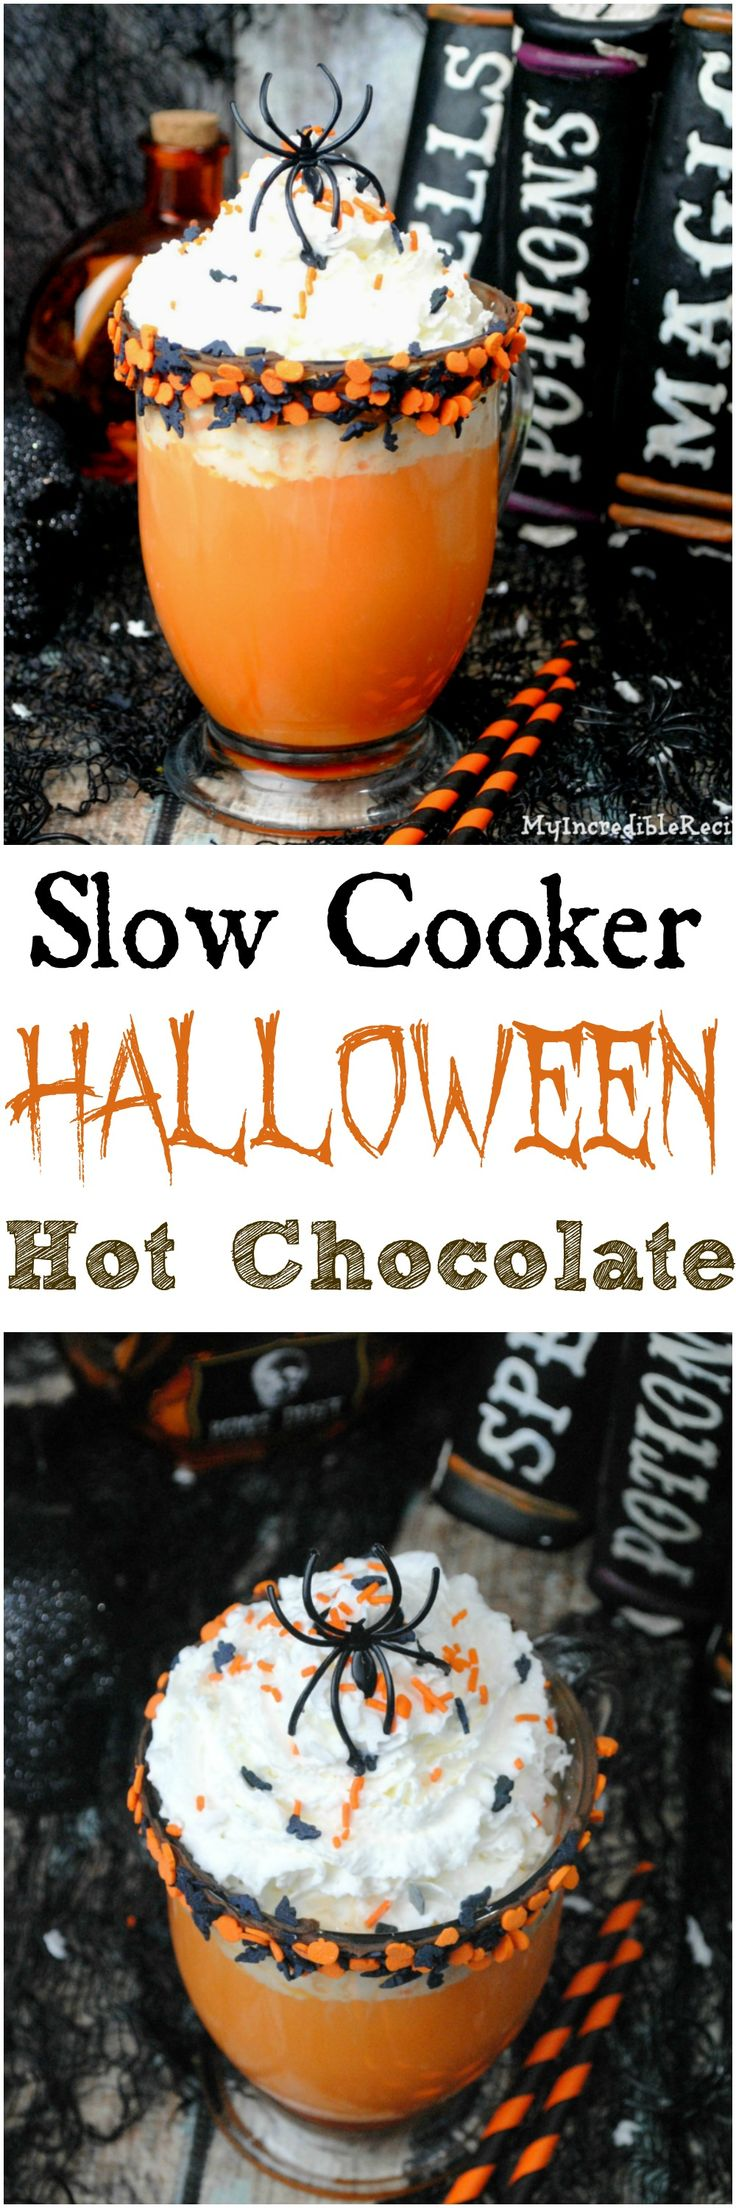 Slow Cooker Halloween Hot Chocolate!                                                                                                                                                                                 More